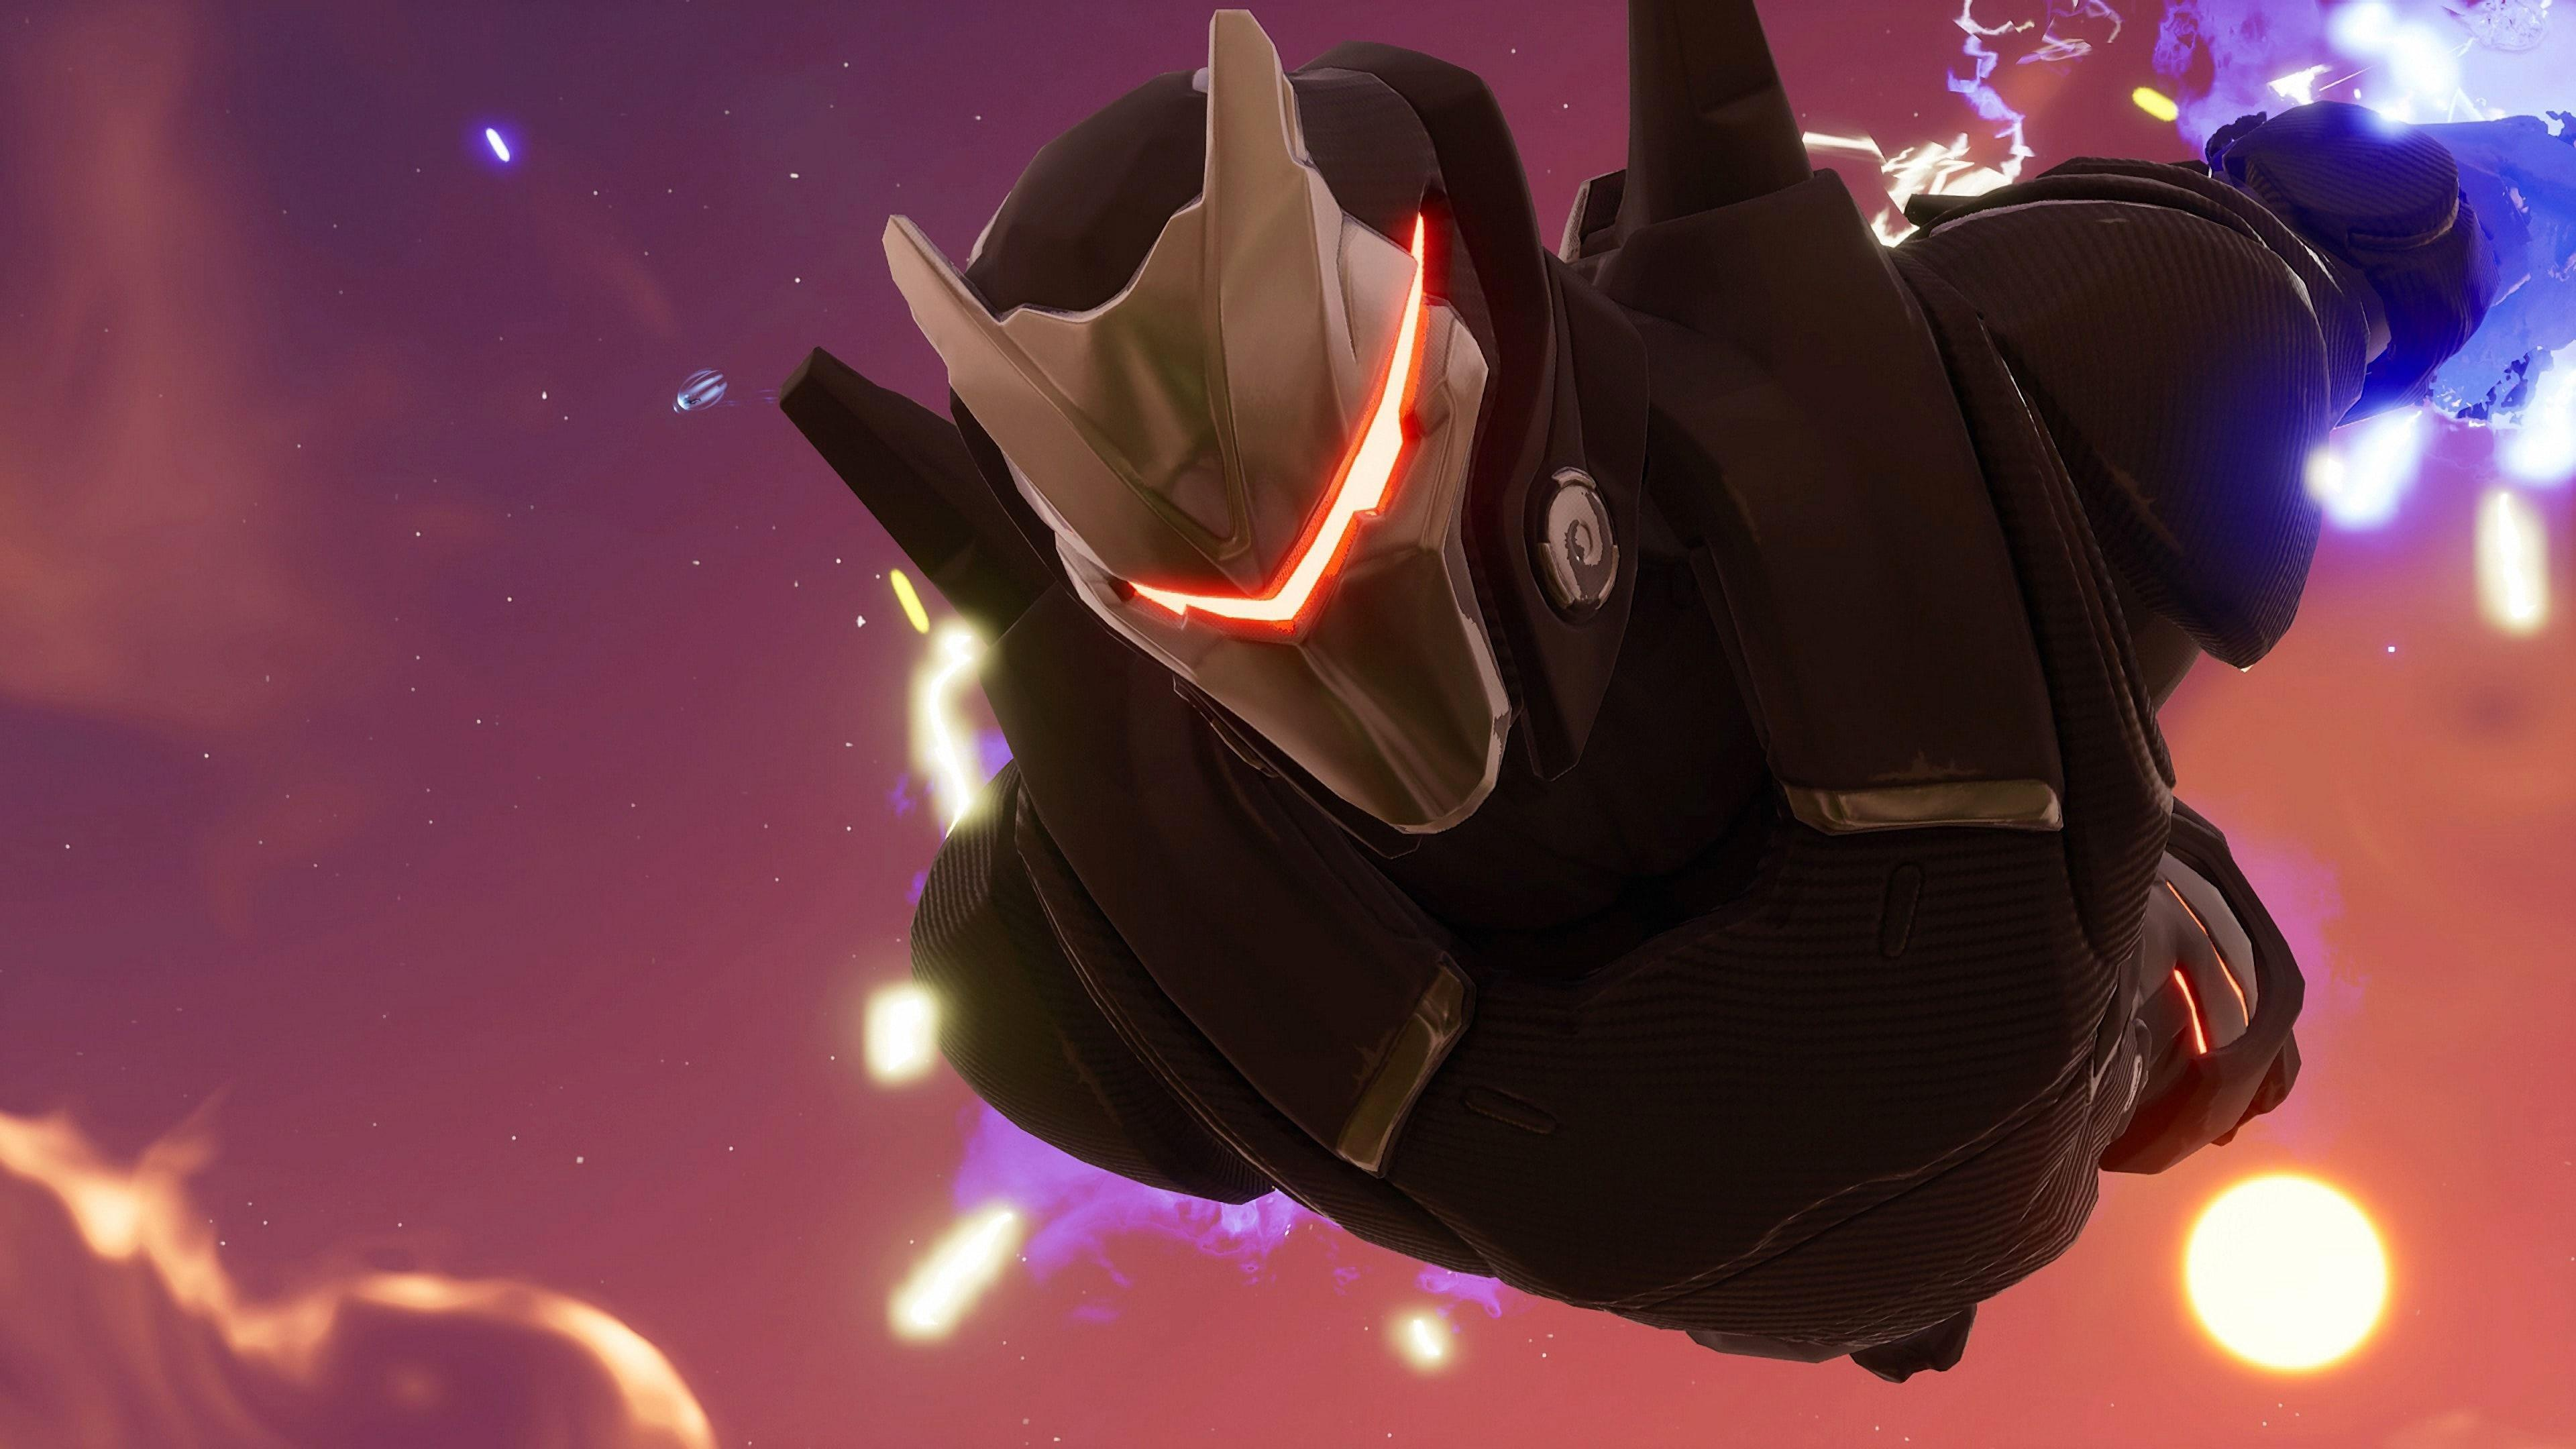 Omega Skydive Fortnite Battle Royale #4070 Wallpapers and Free Stock ...